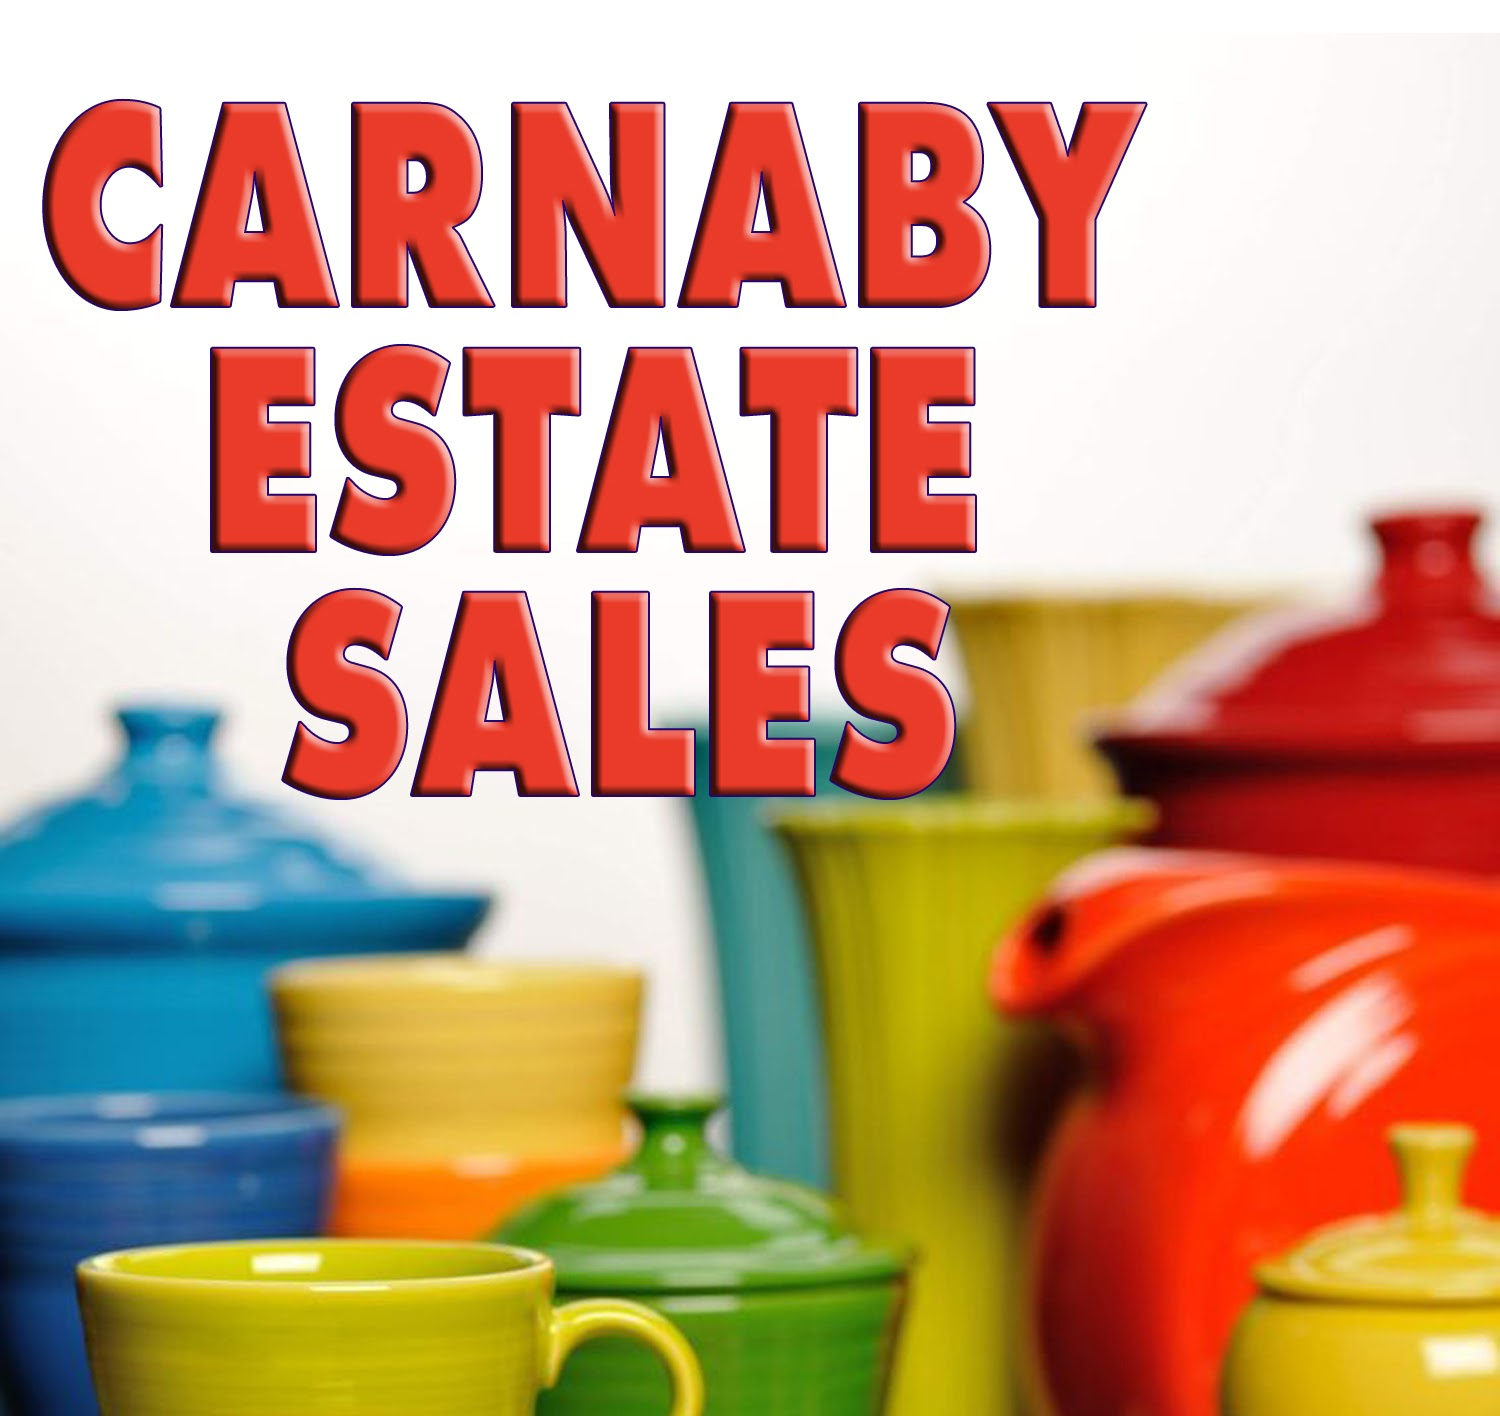 Carnaby Estate Sales - cover photo